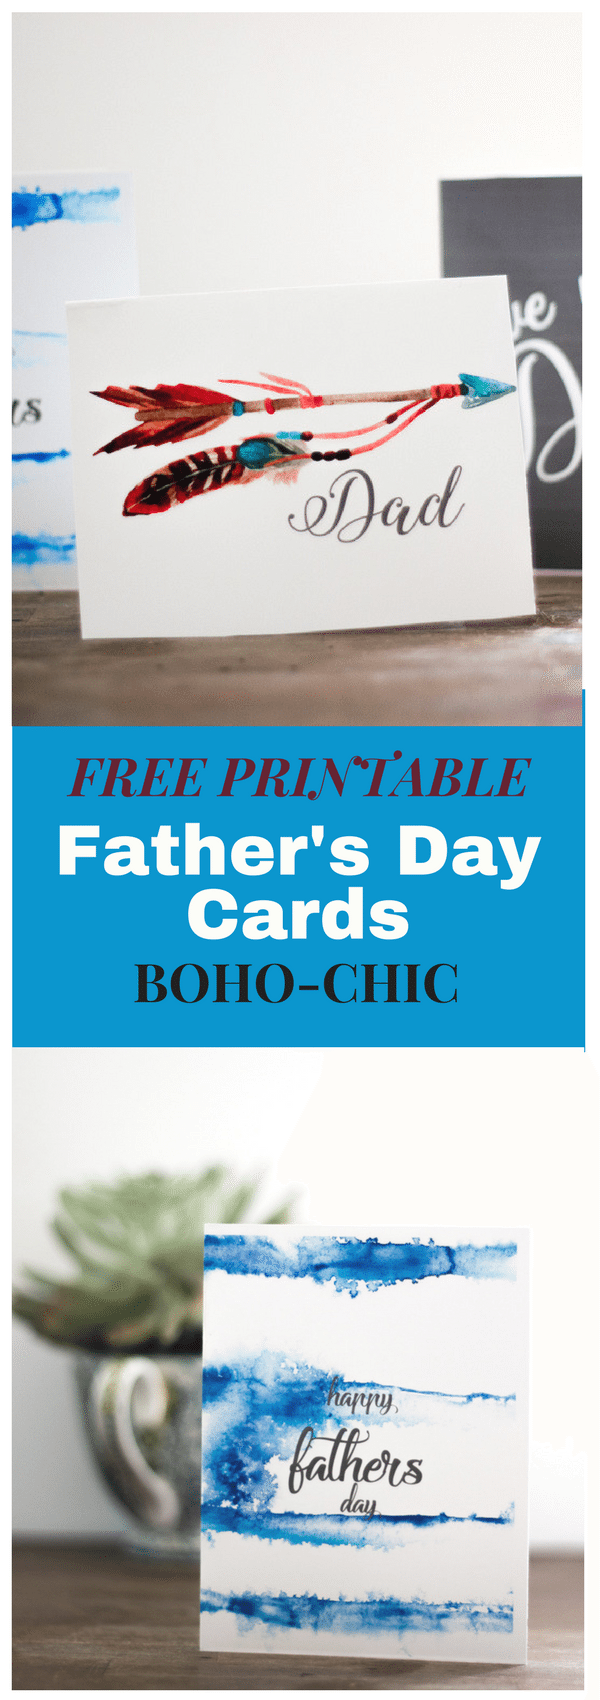 Free printable cards boho-chic Fathers Day